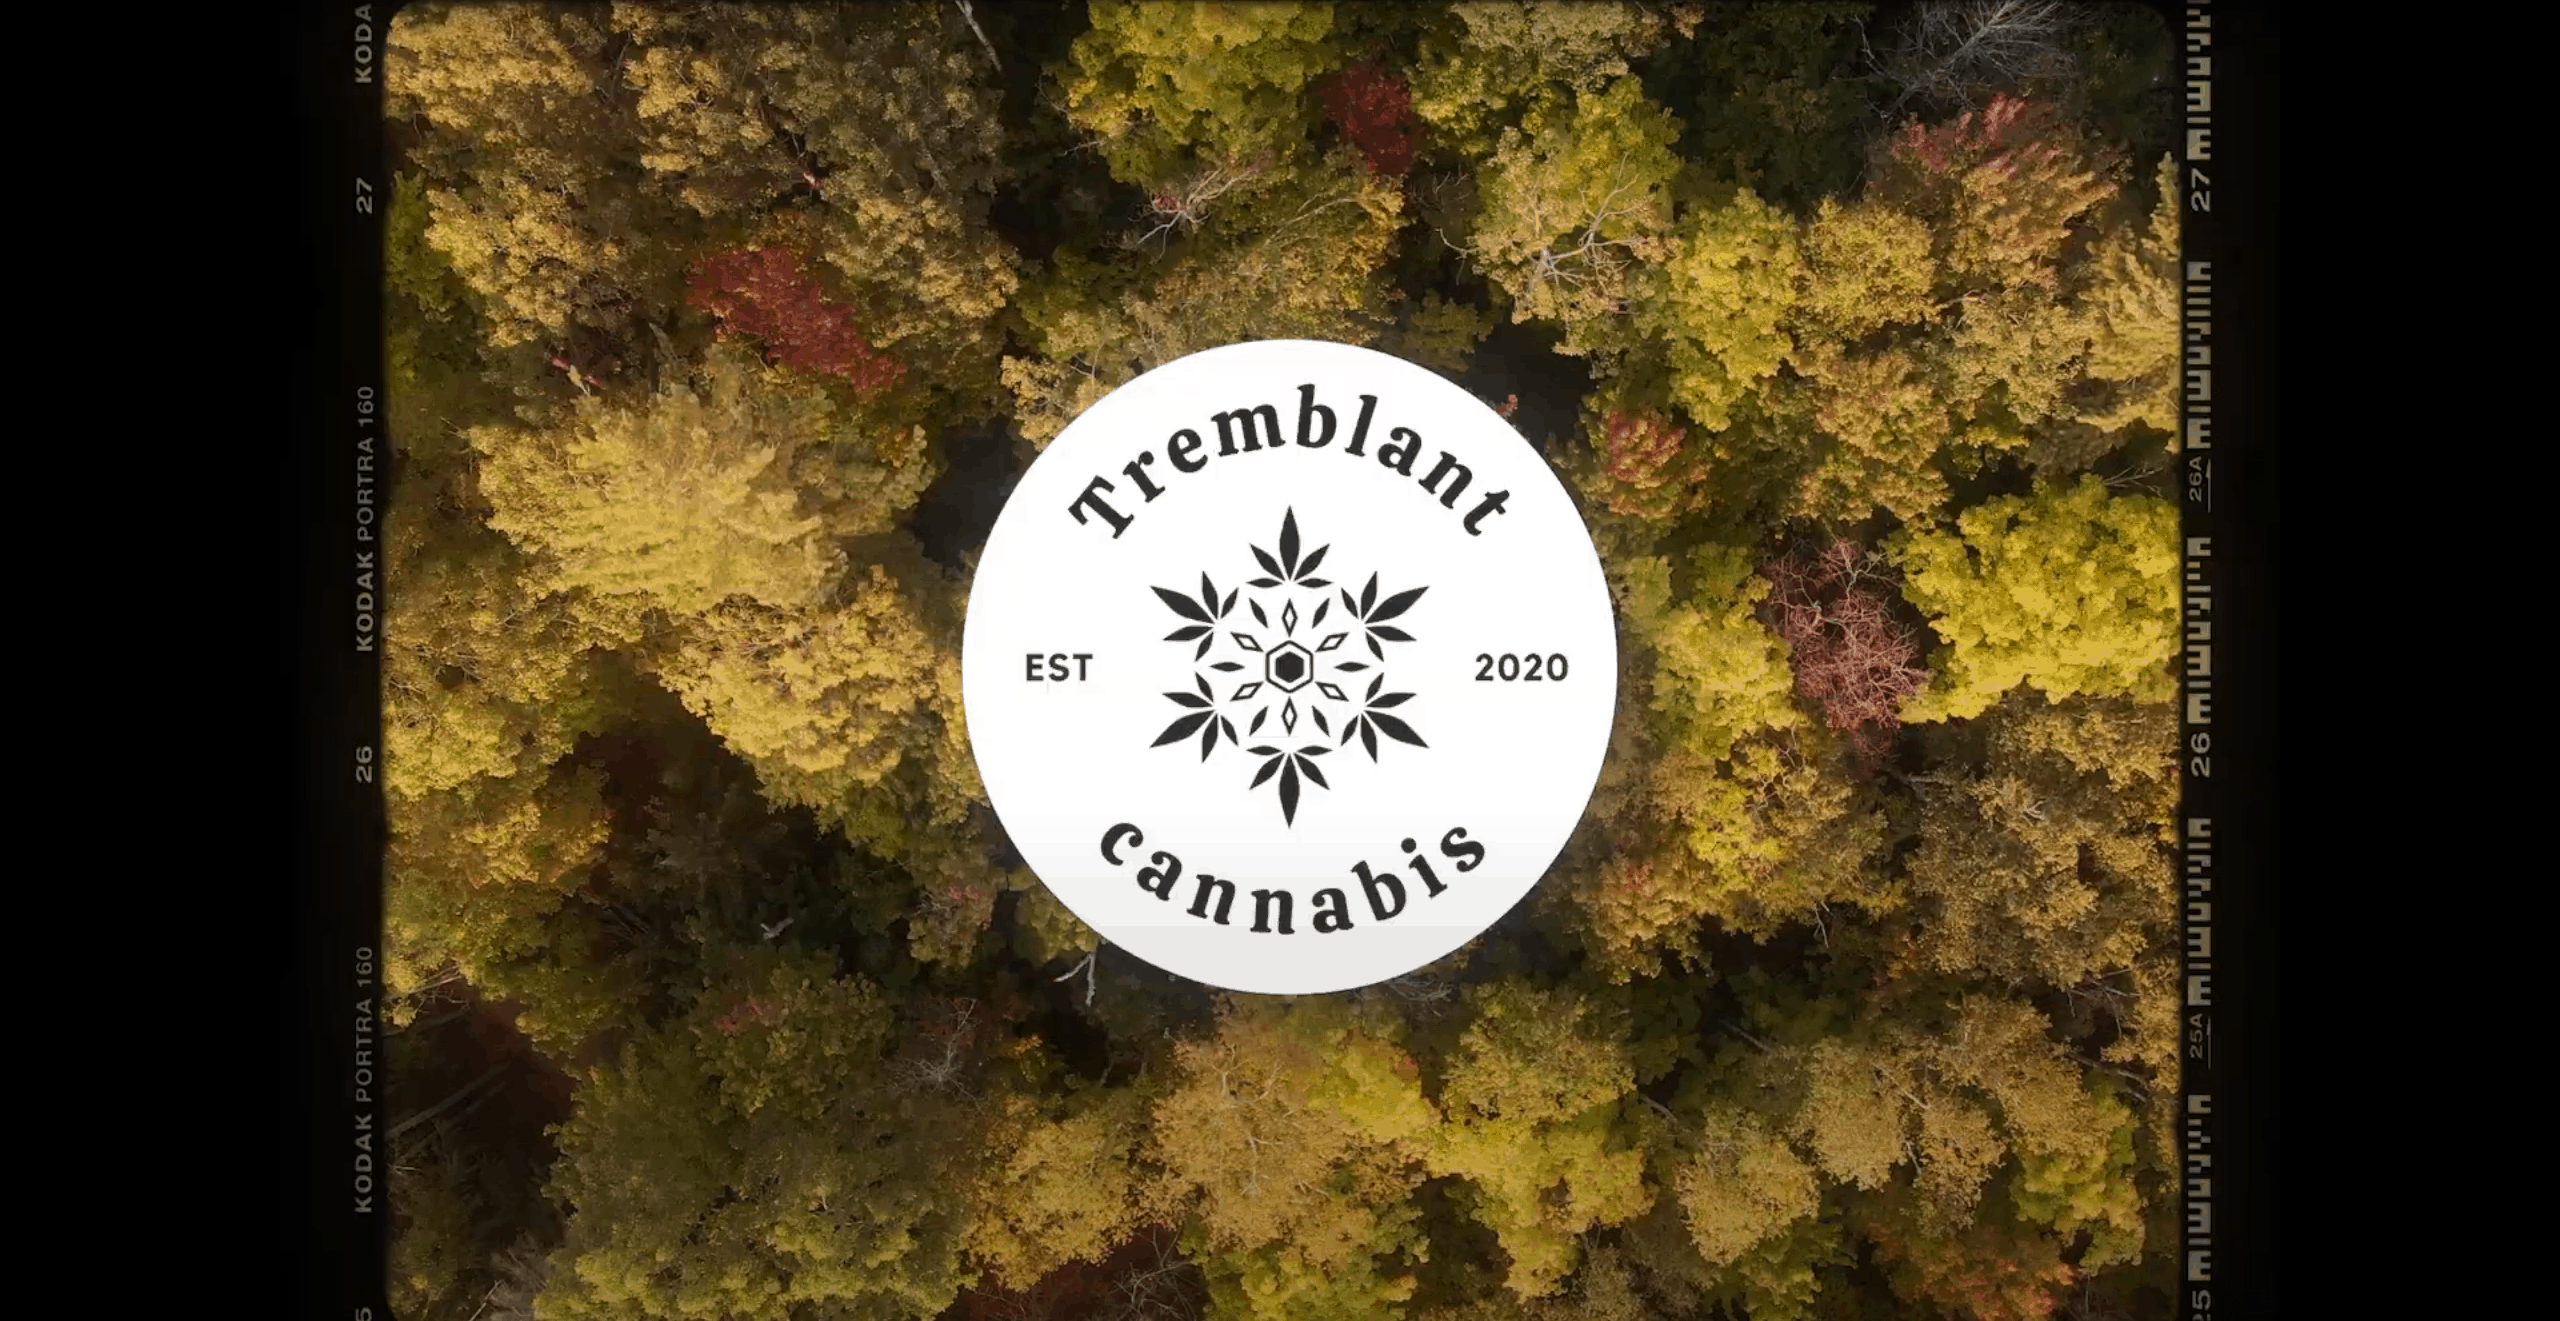 tremblant cannabis homepage video cover image